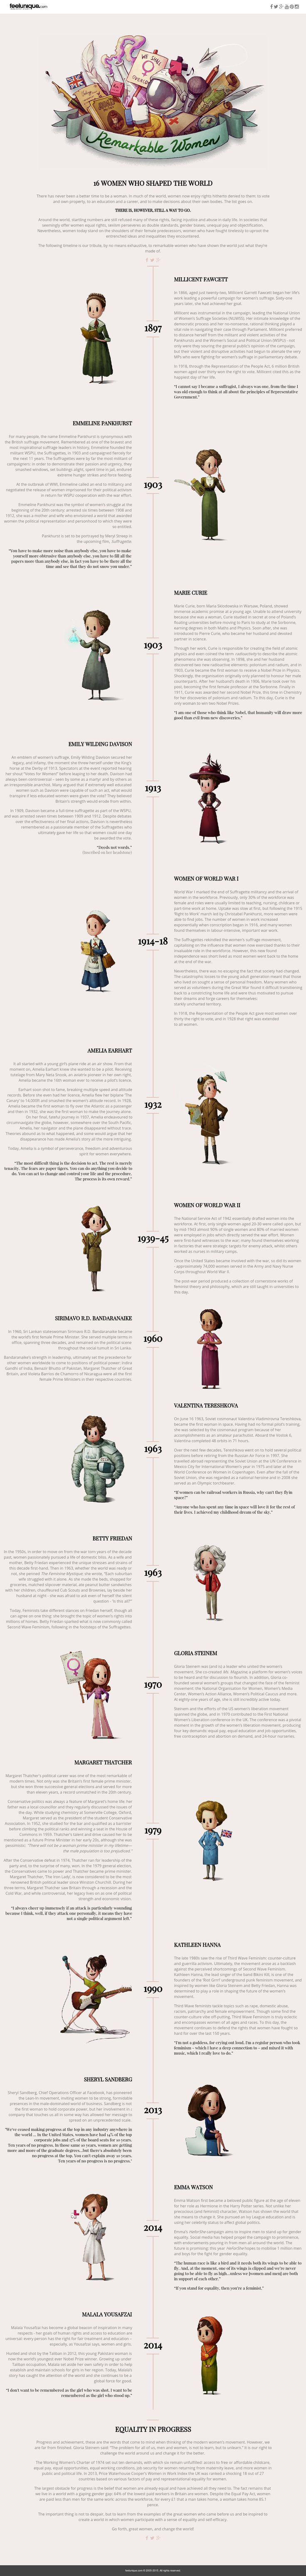 16 women who shaped the world #equality